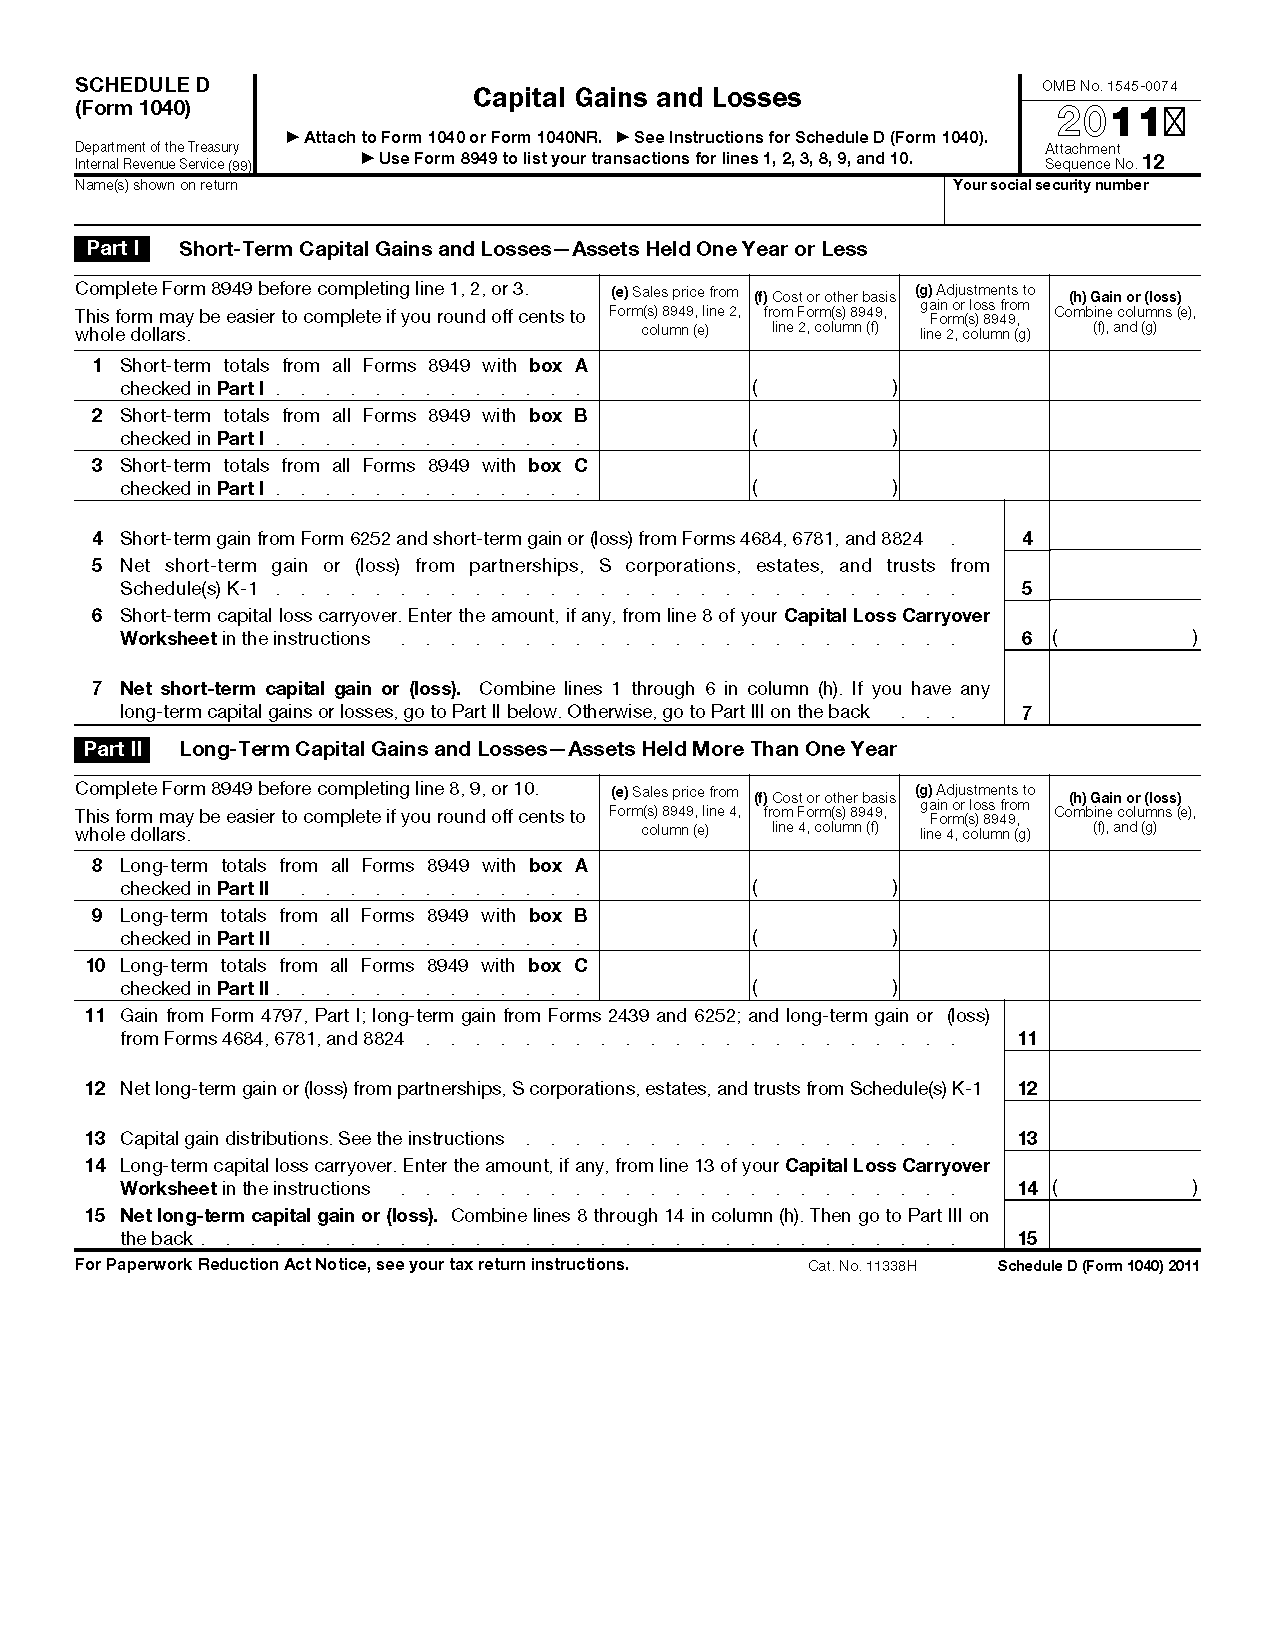 Form Schedule D Capital Loss Carryover Worksheet